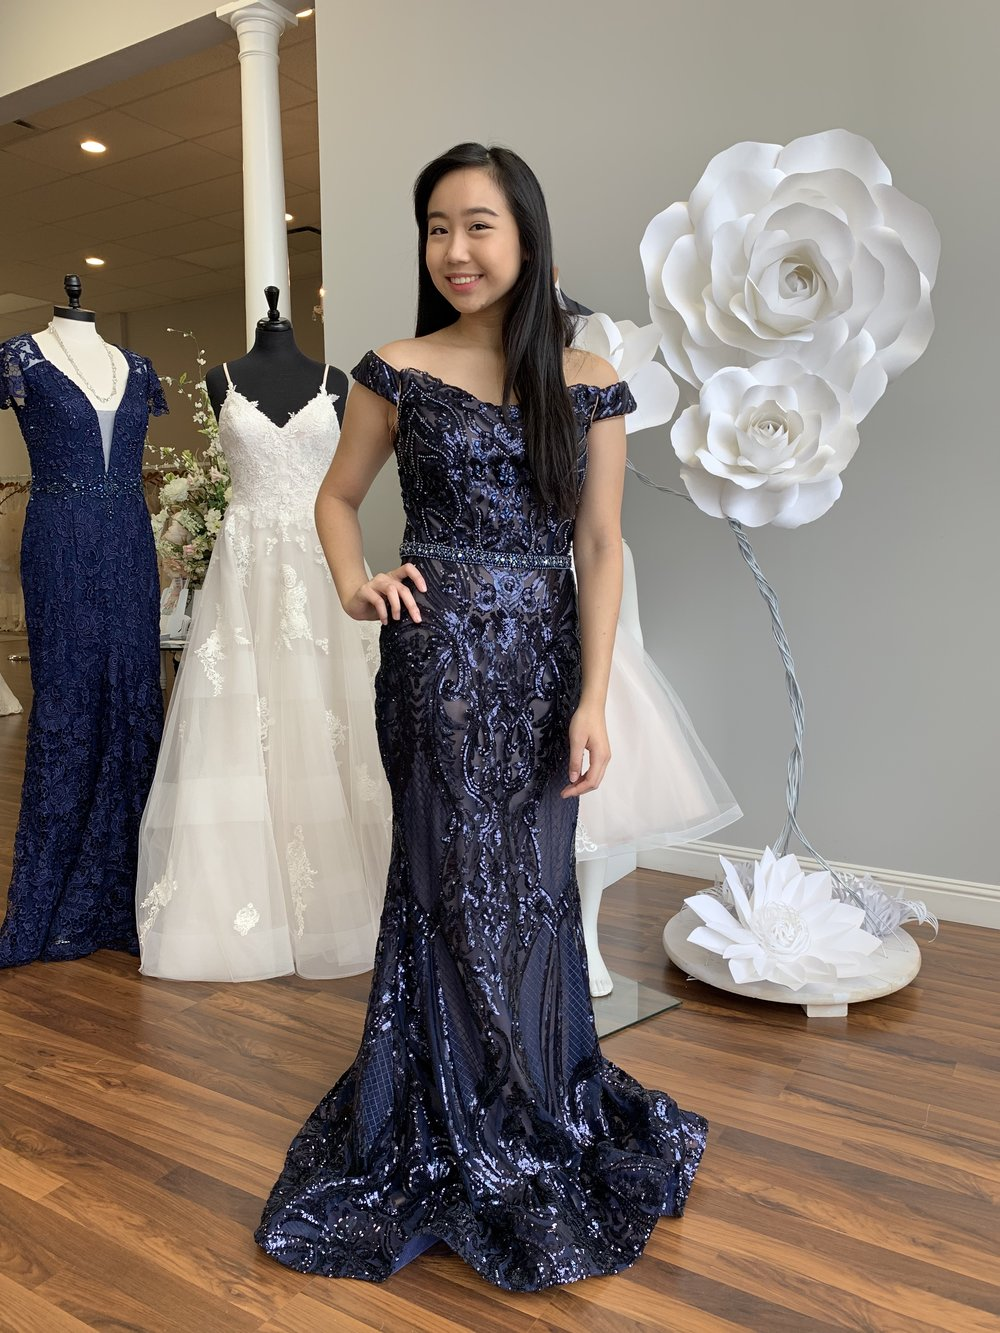 82cb759dfa2 Stores That Sell Prom Dresses In Charlotte Nc - Data Dynamic AG